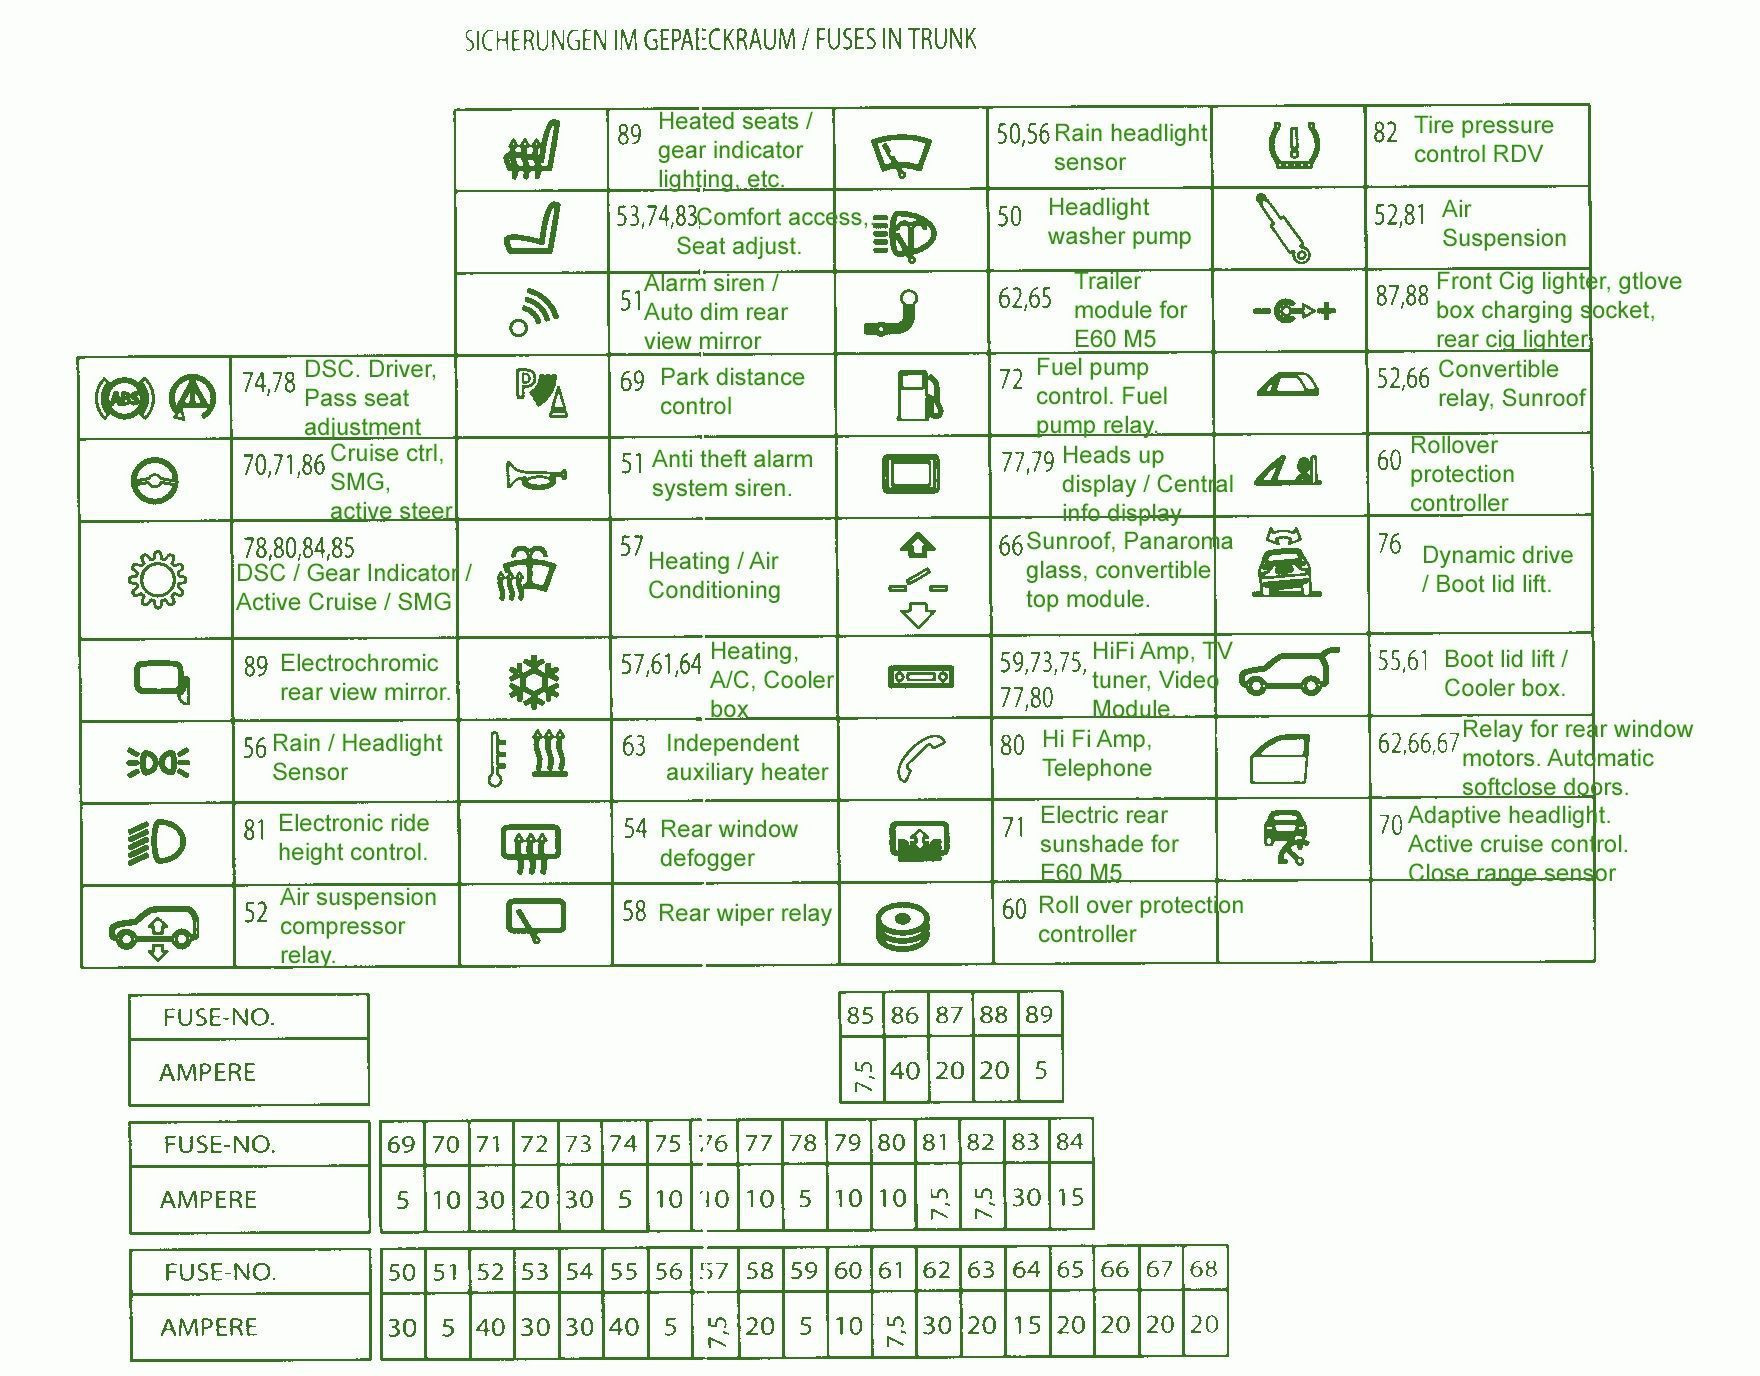 [SCHEMATICS_44OR]  TW_6124] Corsa C 1 4 Engine On Wiring Diagram For Water Pump Pressure  Switch Schematic Wiring | Opel Vectra C Fuse Box Diagram |  | Sheox Dimet Akeb Rect Mohammedshrine Librar Wiring 101